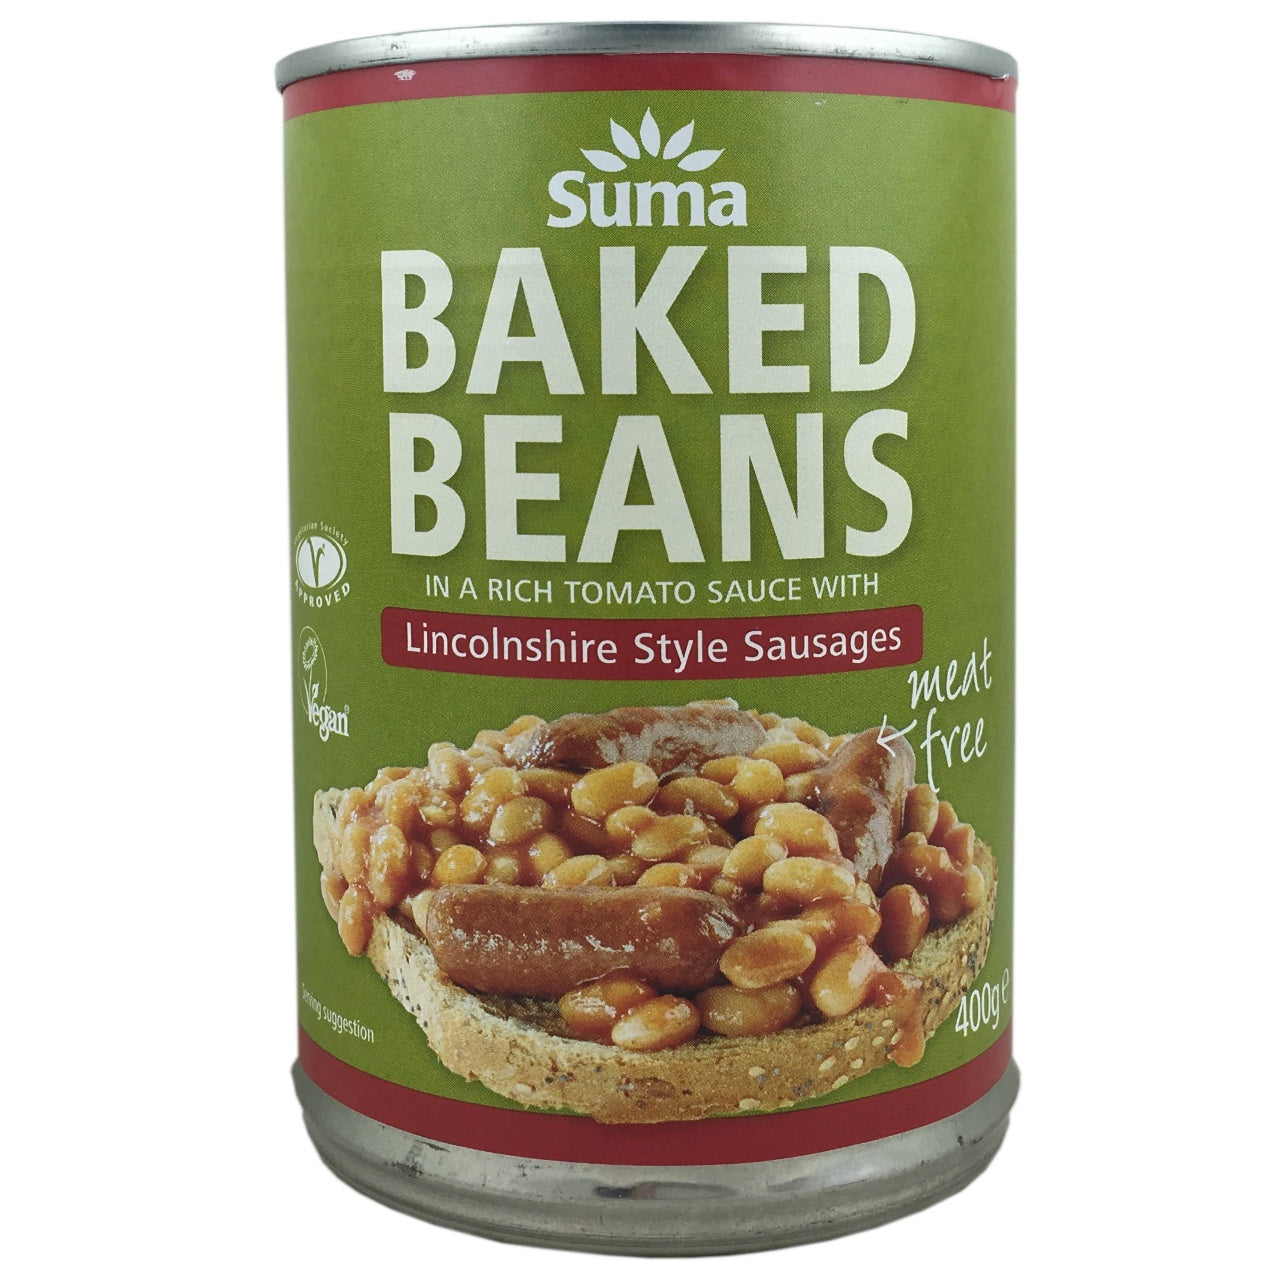 Suma Baked Beans with Lincolnshire Sausages